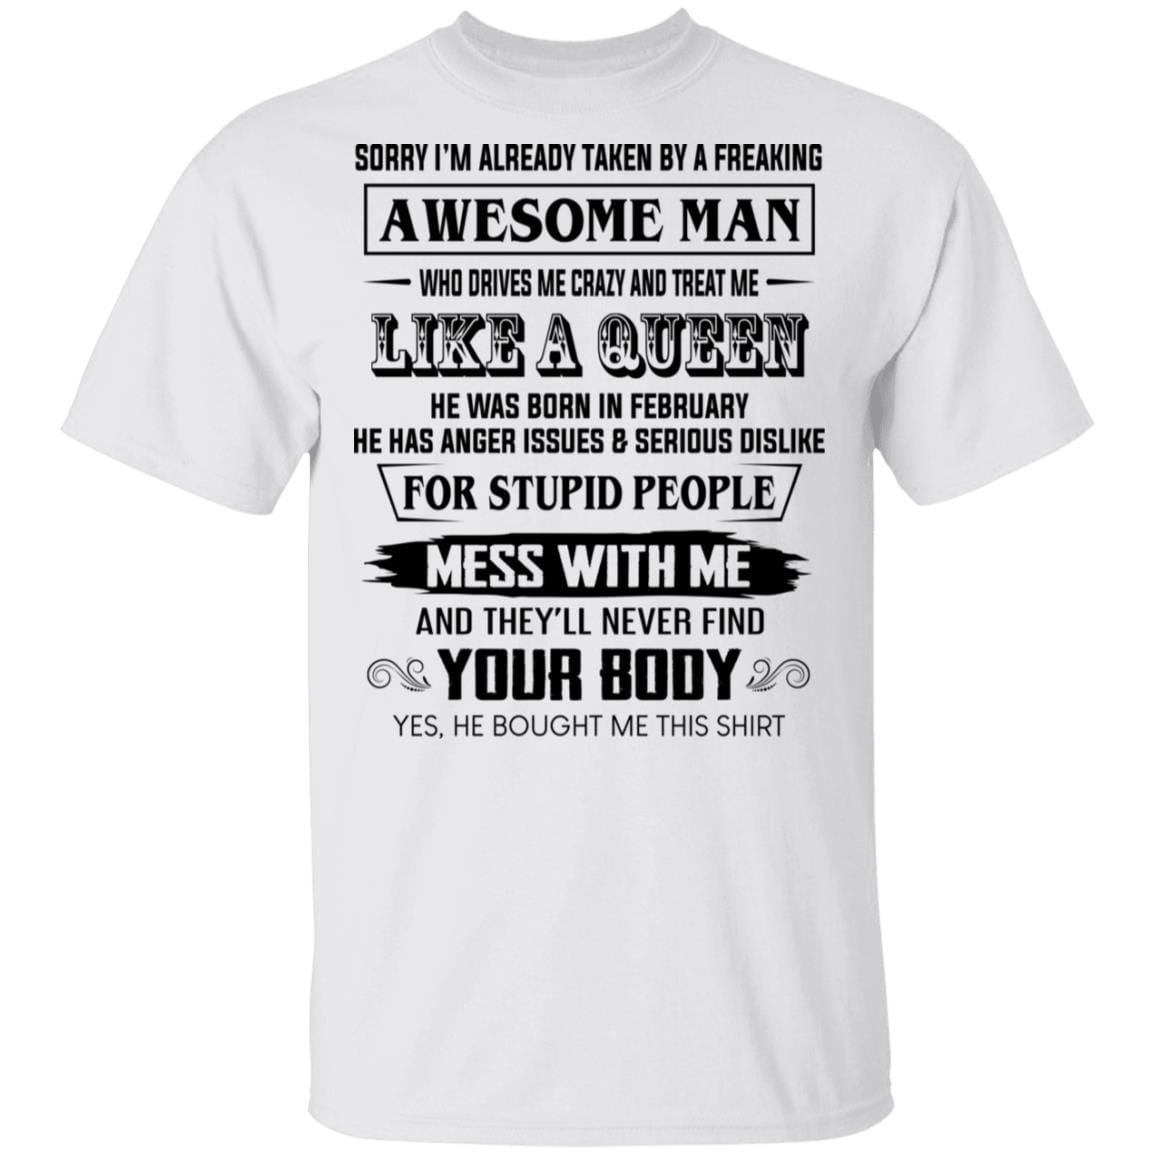 I'm Already Taken By A Freaking Awesome Man Who Drives Me Crazy And Born In Februay T-Shirts, Hoodies 1049-9974-86602256-48300 - Tee Ript